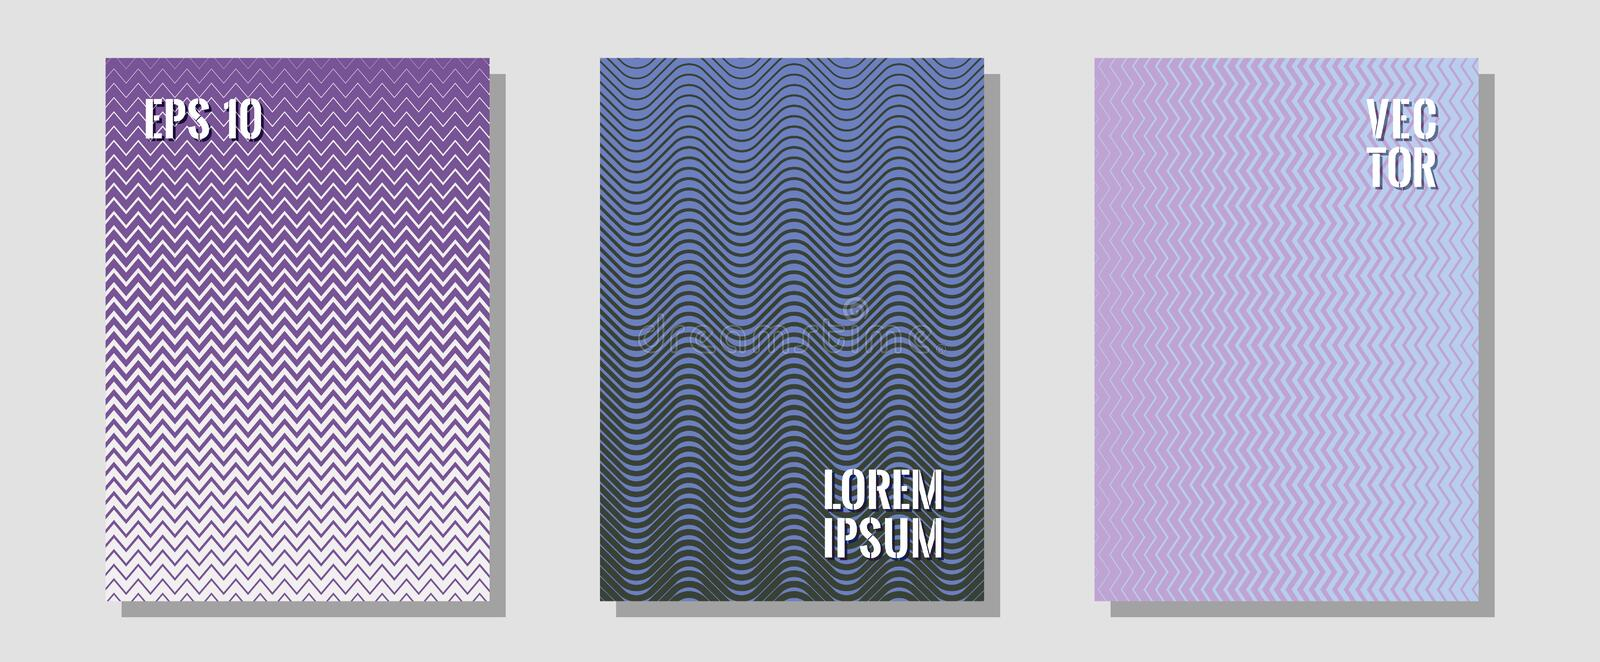 Cool flyers set, vector halftone poster backgrounds. Music placards. Zigzag halftone lines wave stripes backdrops. Educational notepads. Geometric lines shapes royalty free illustration